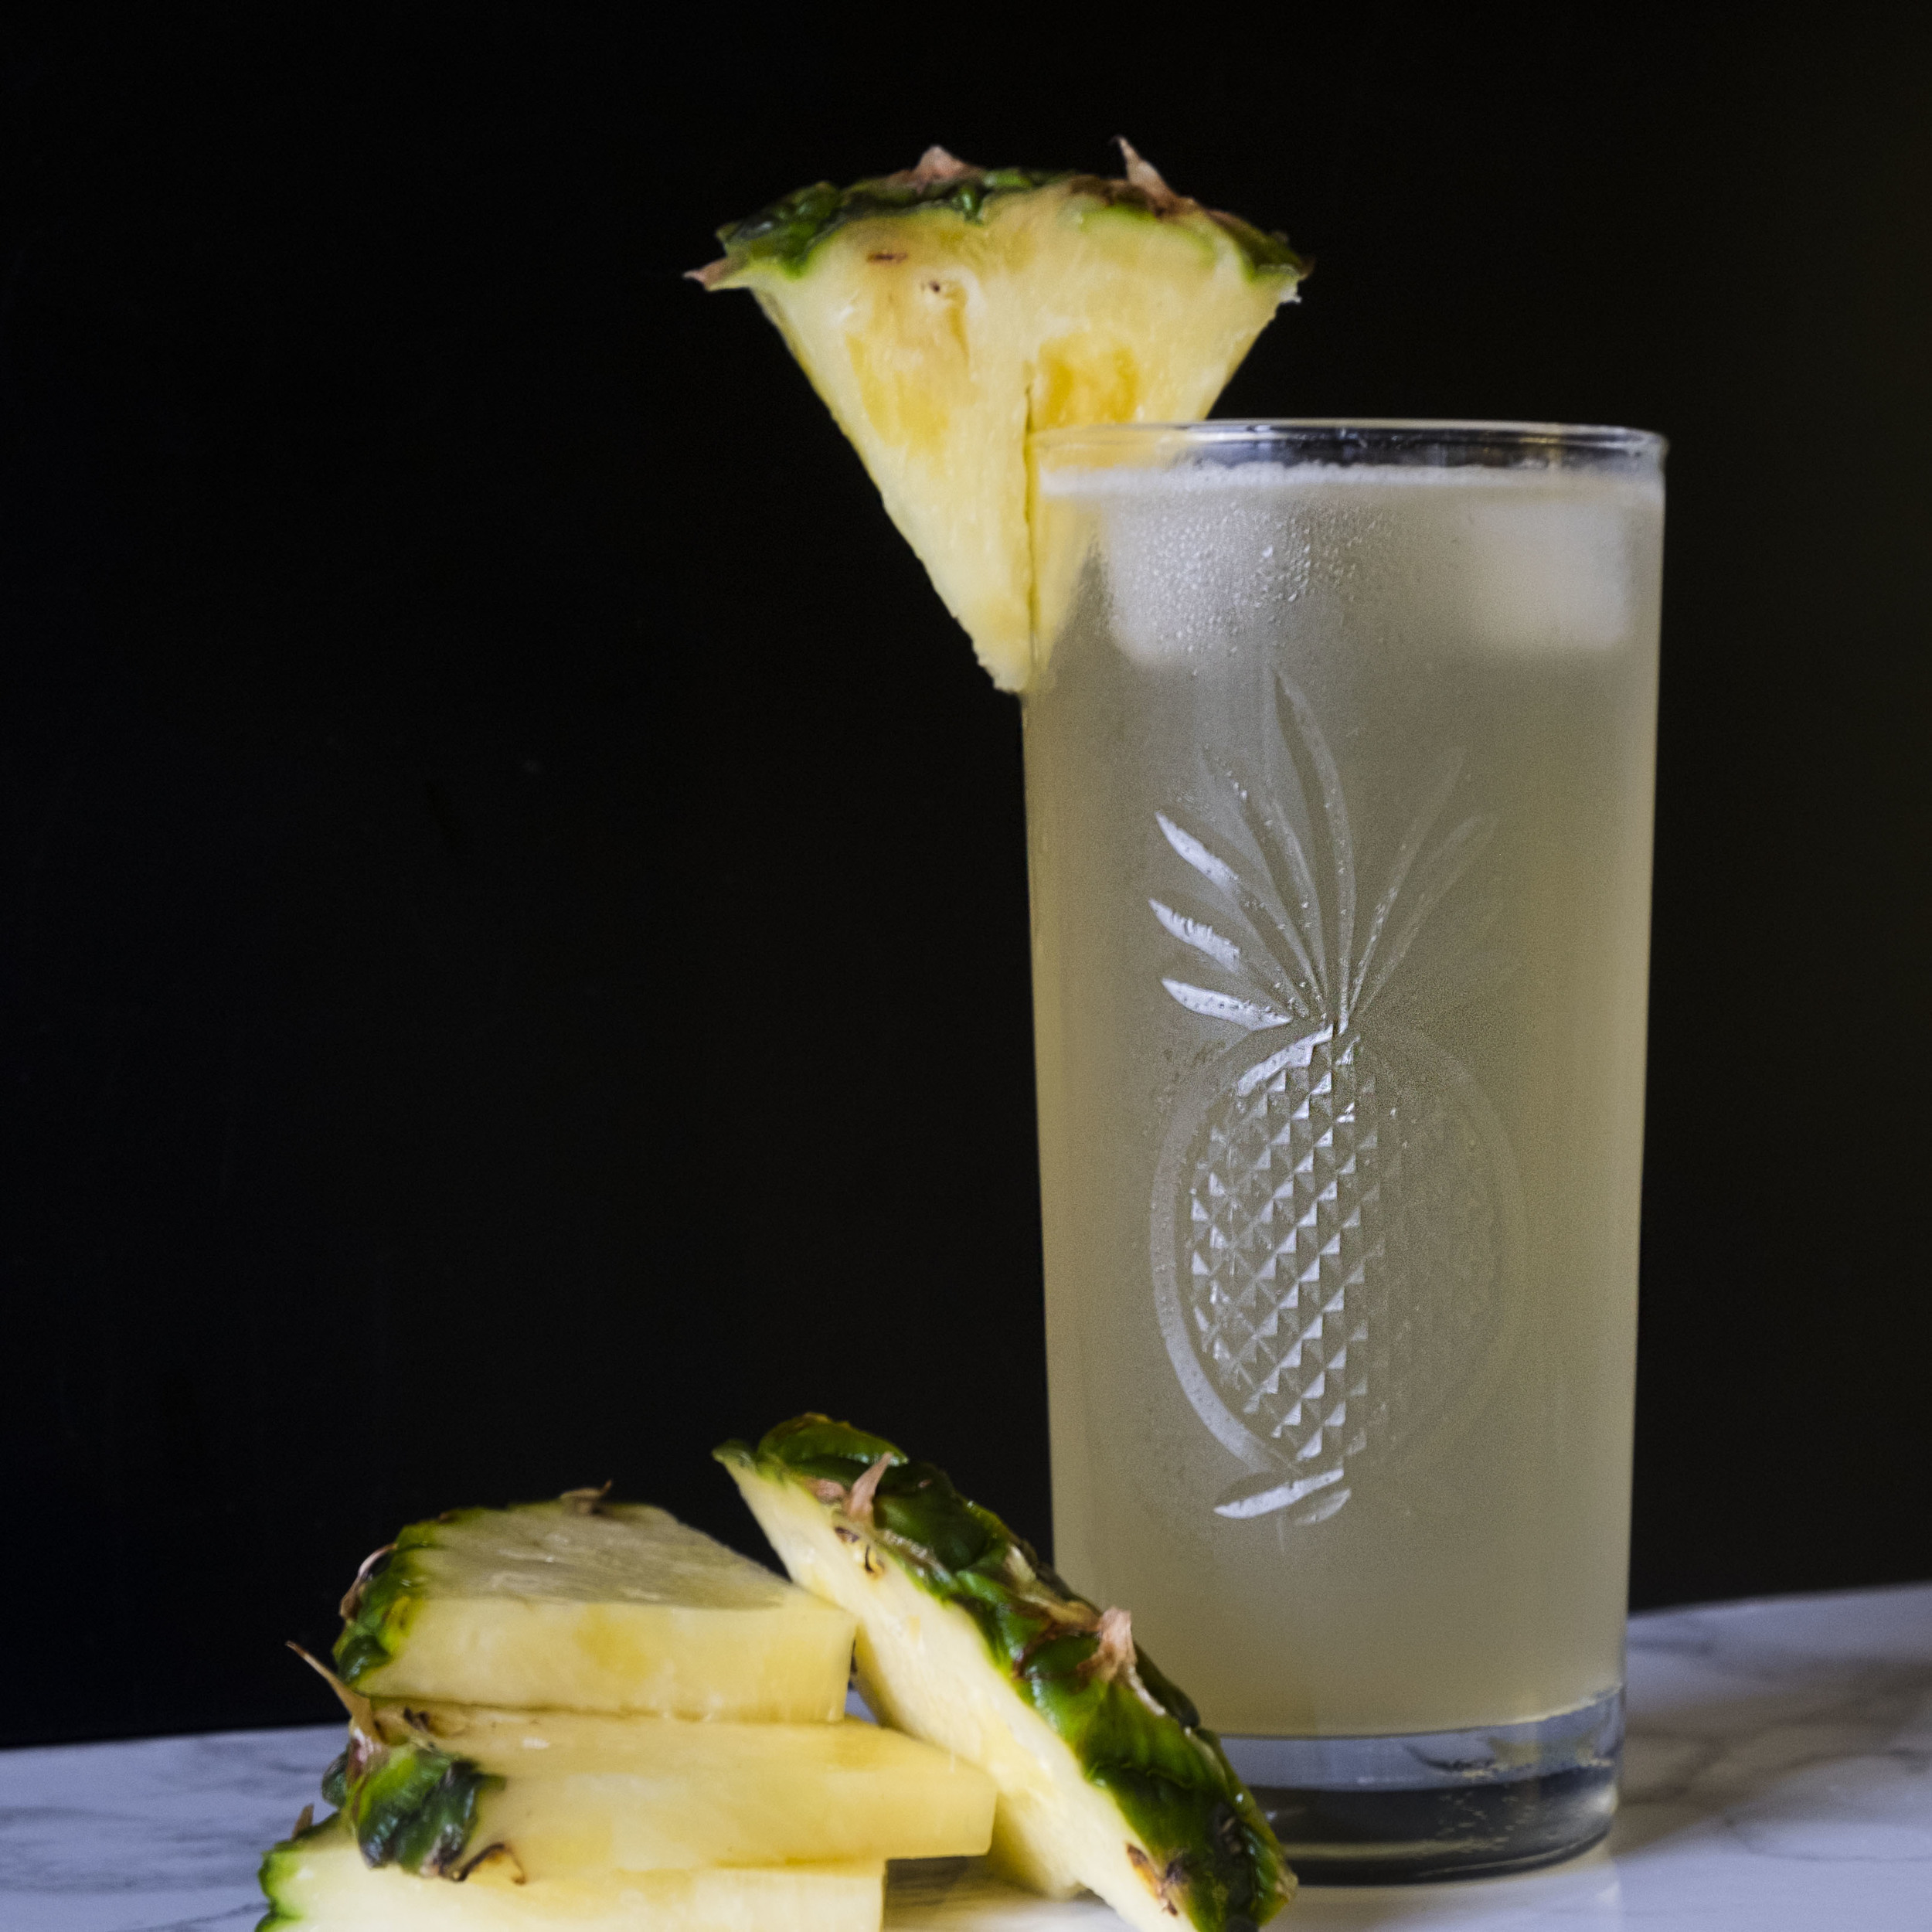 Pineapple Cooler Glass provided by  Rolf Glassware .